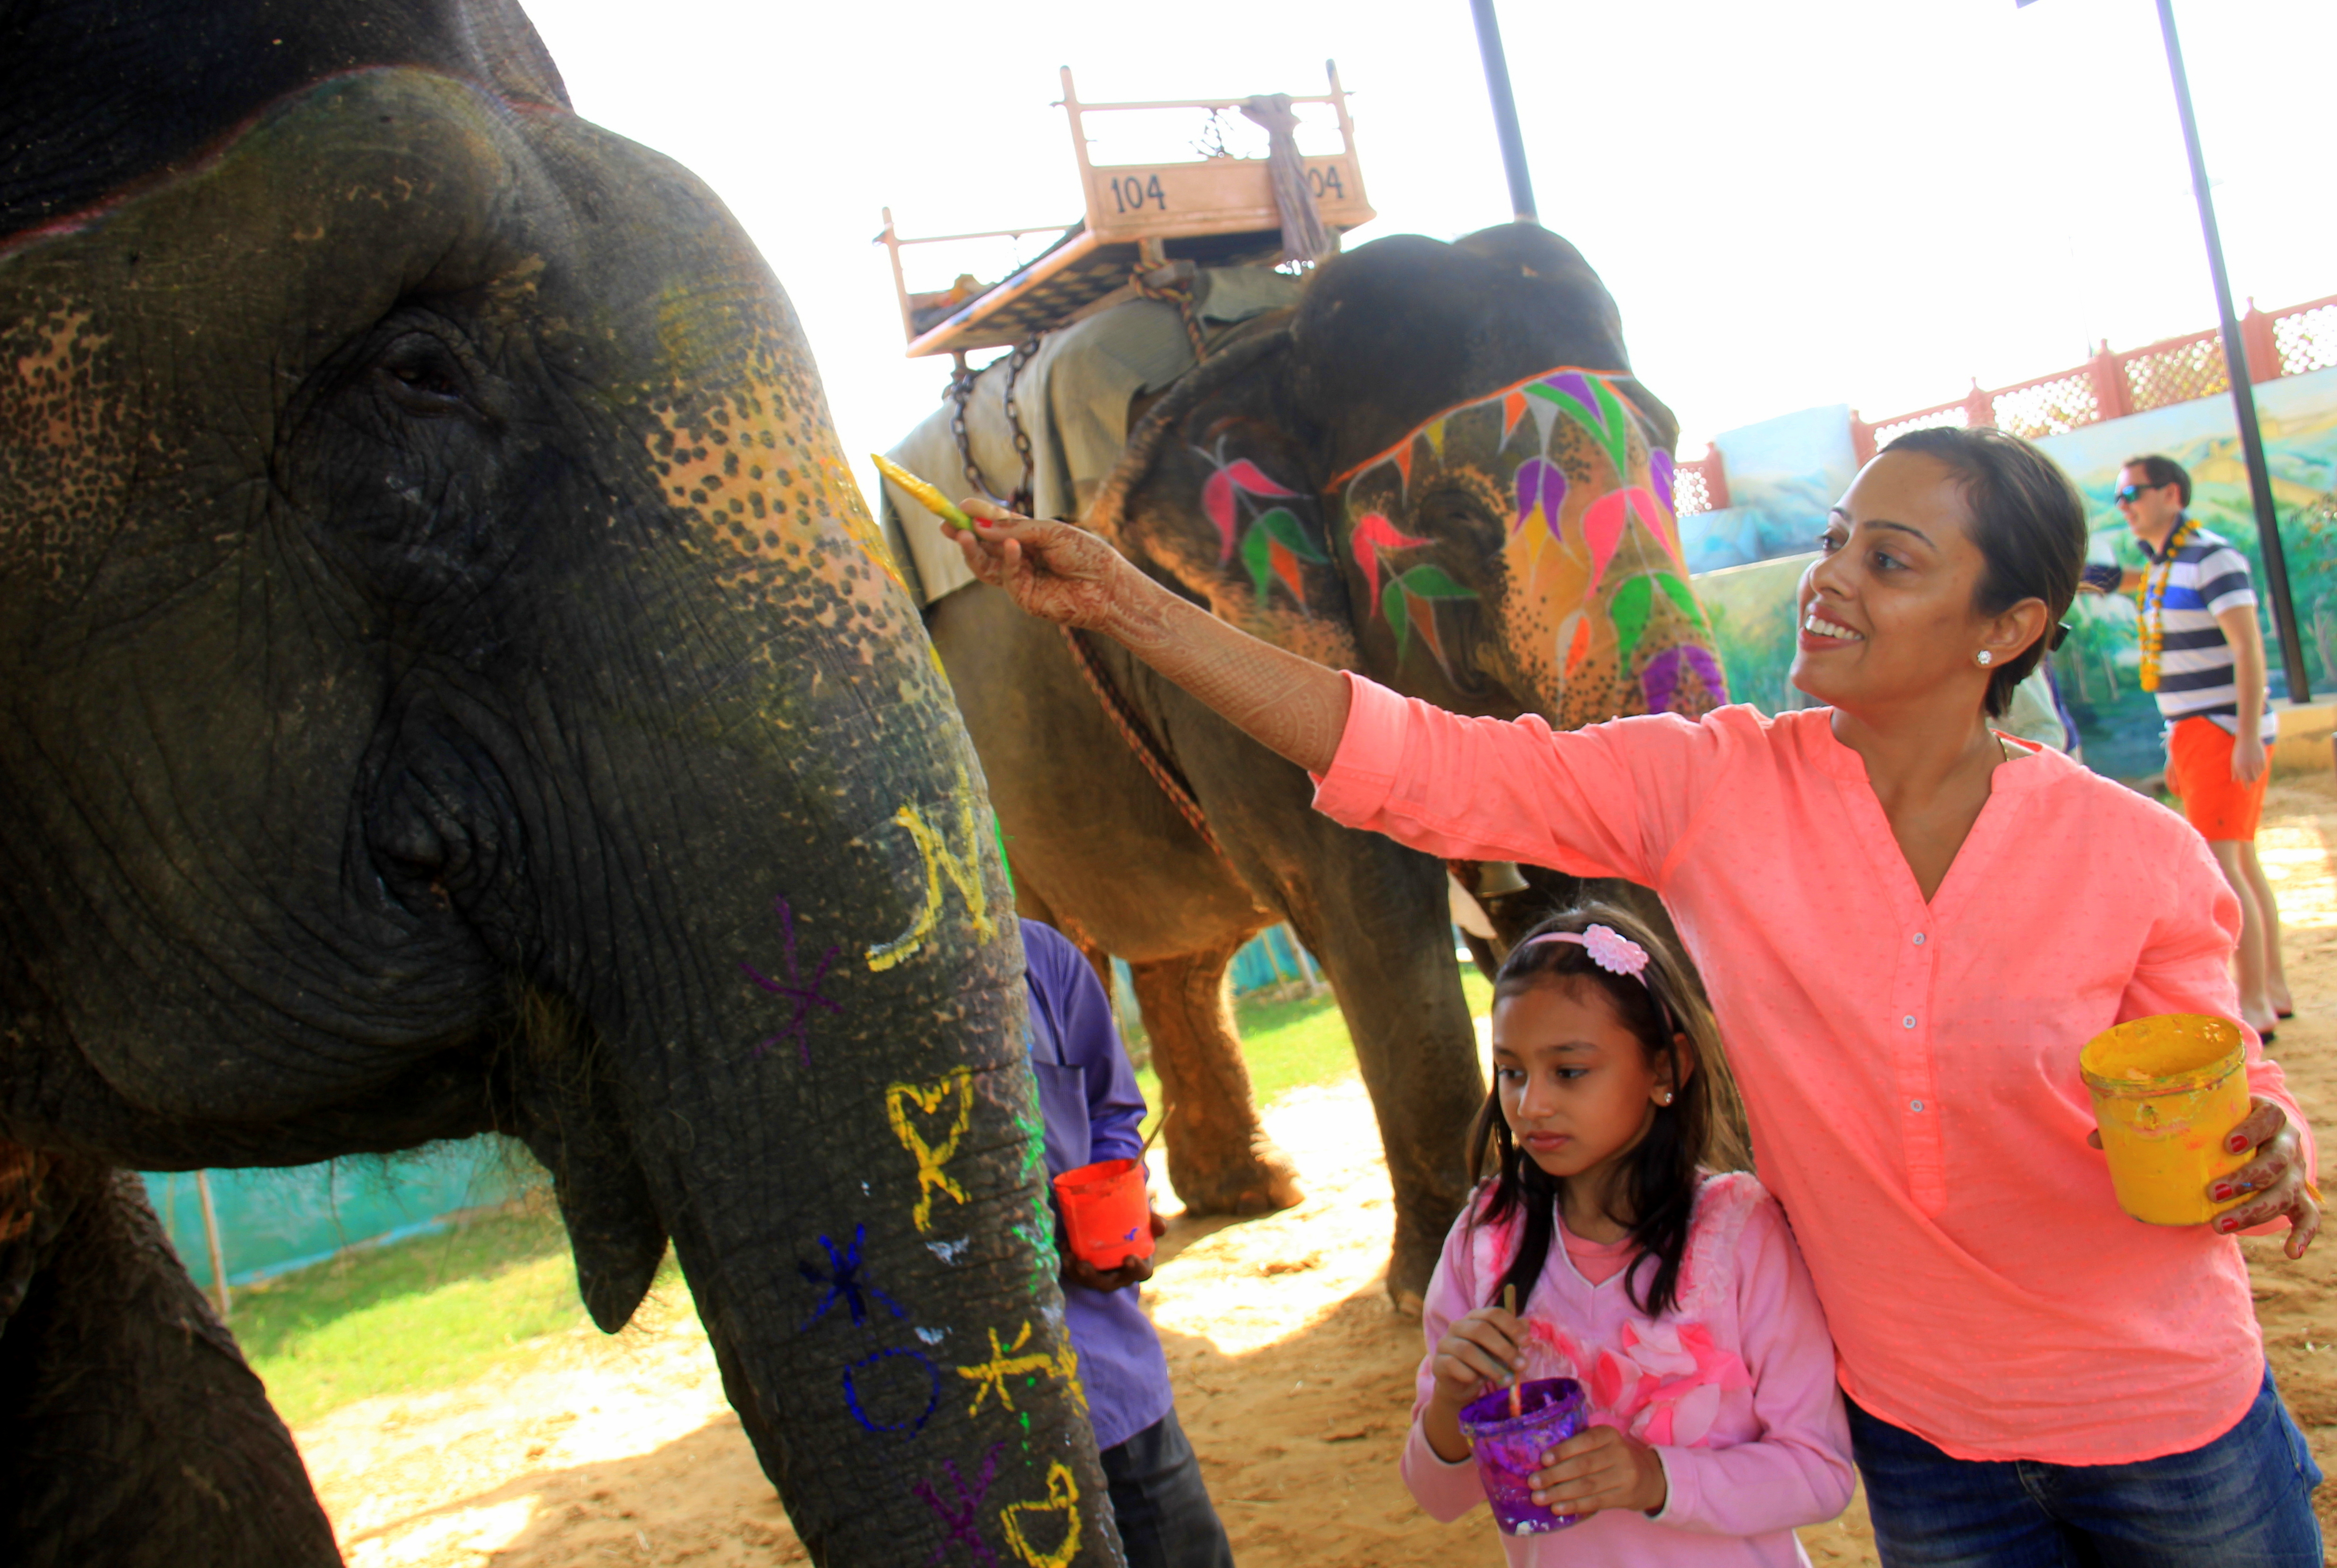 elephant painting is a fun activity in jaipur with kids